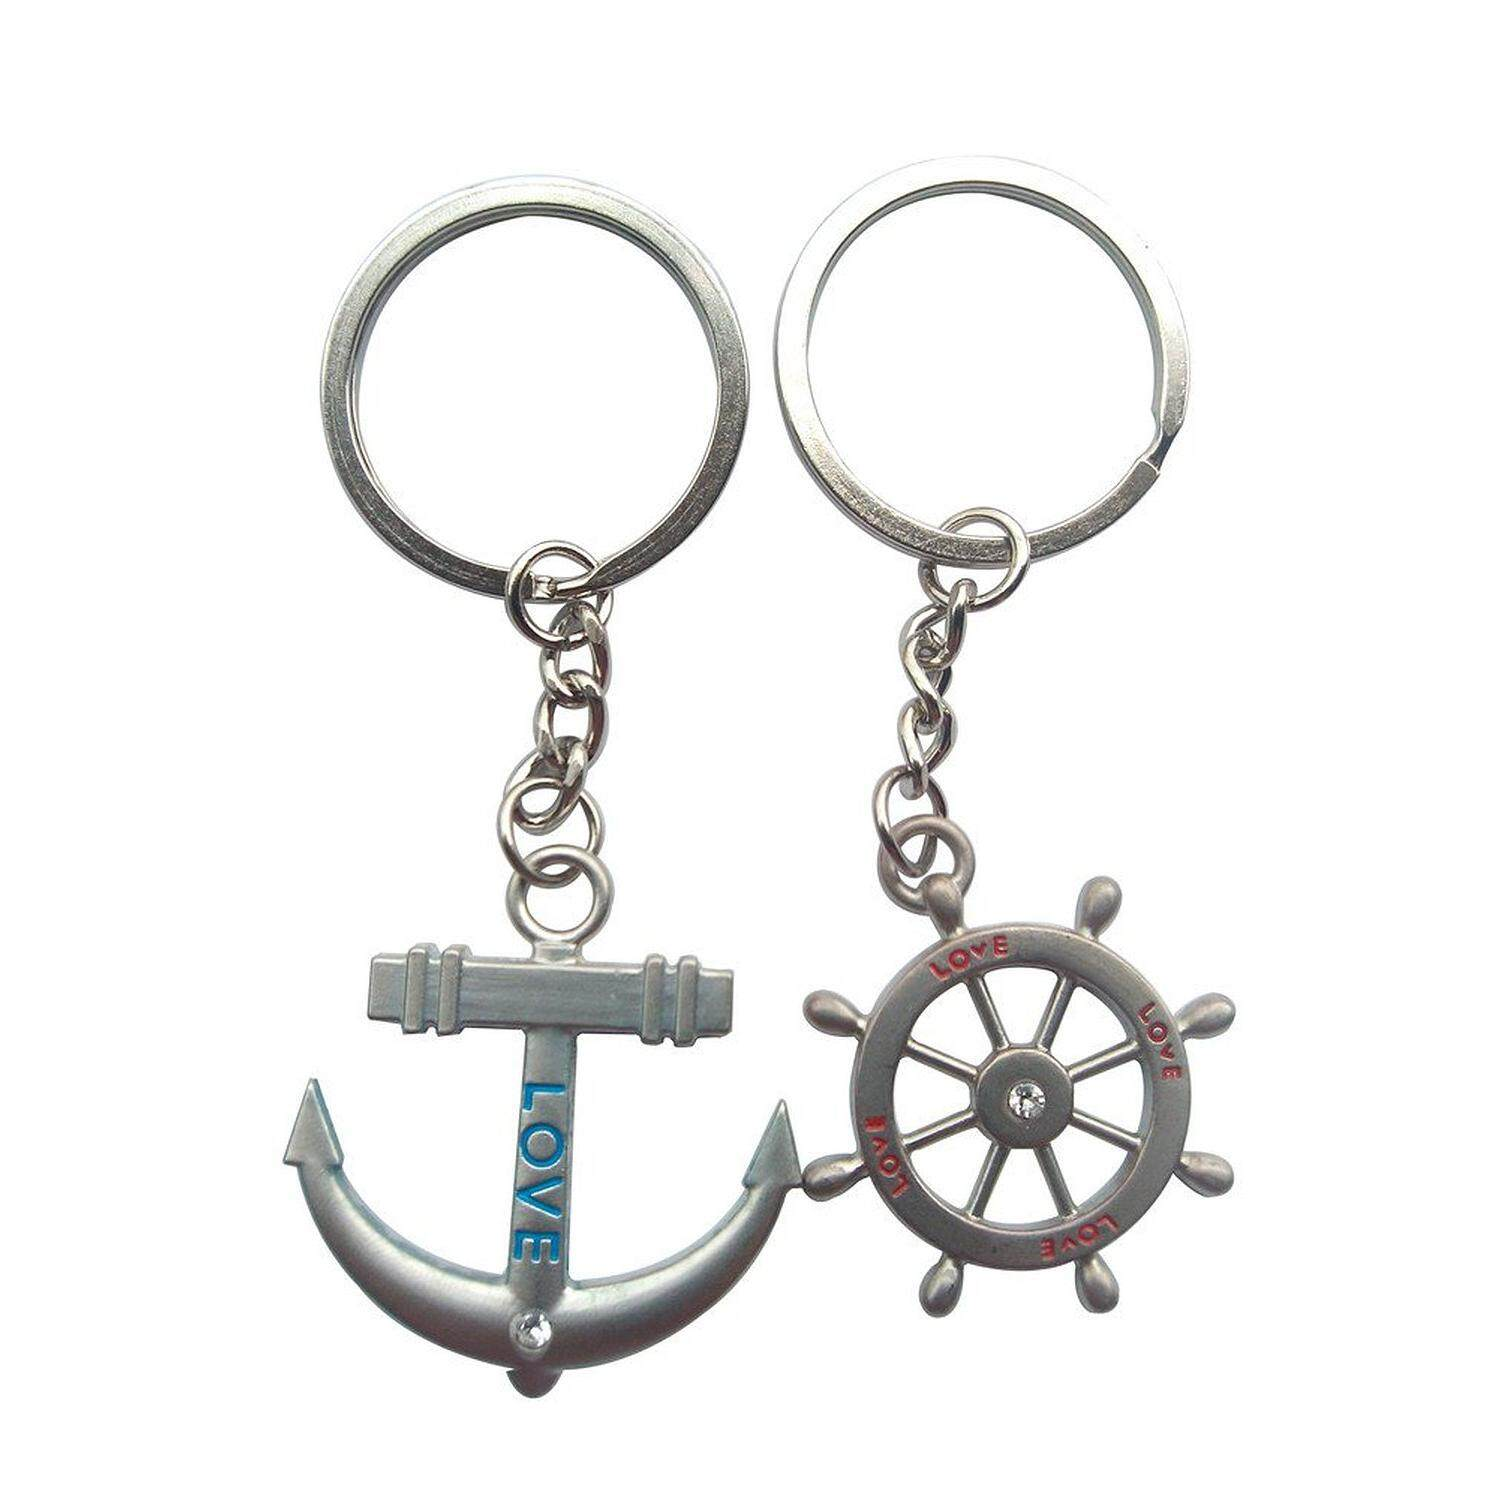 Hang-Qiao 1 Pairs Cupid Arrow Couple Keychain Lovers Pendant Key Ring Silver - Intl